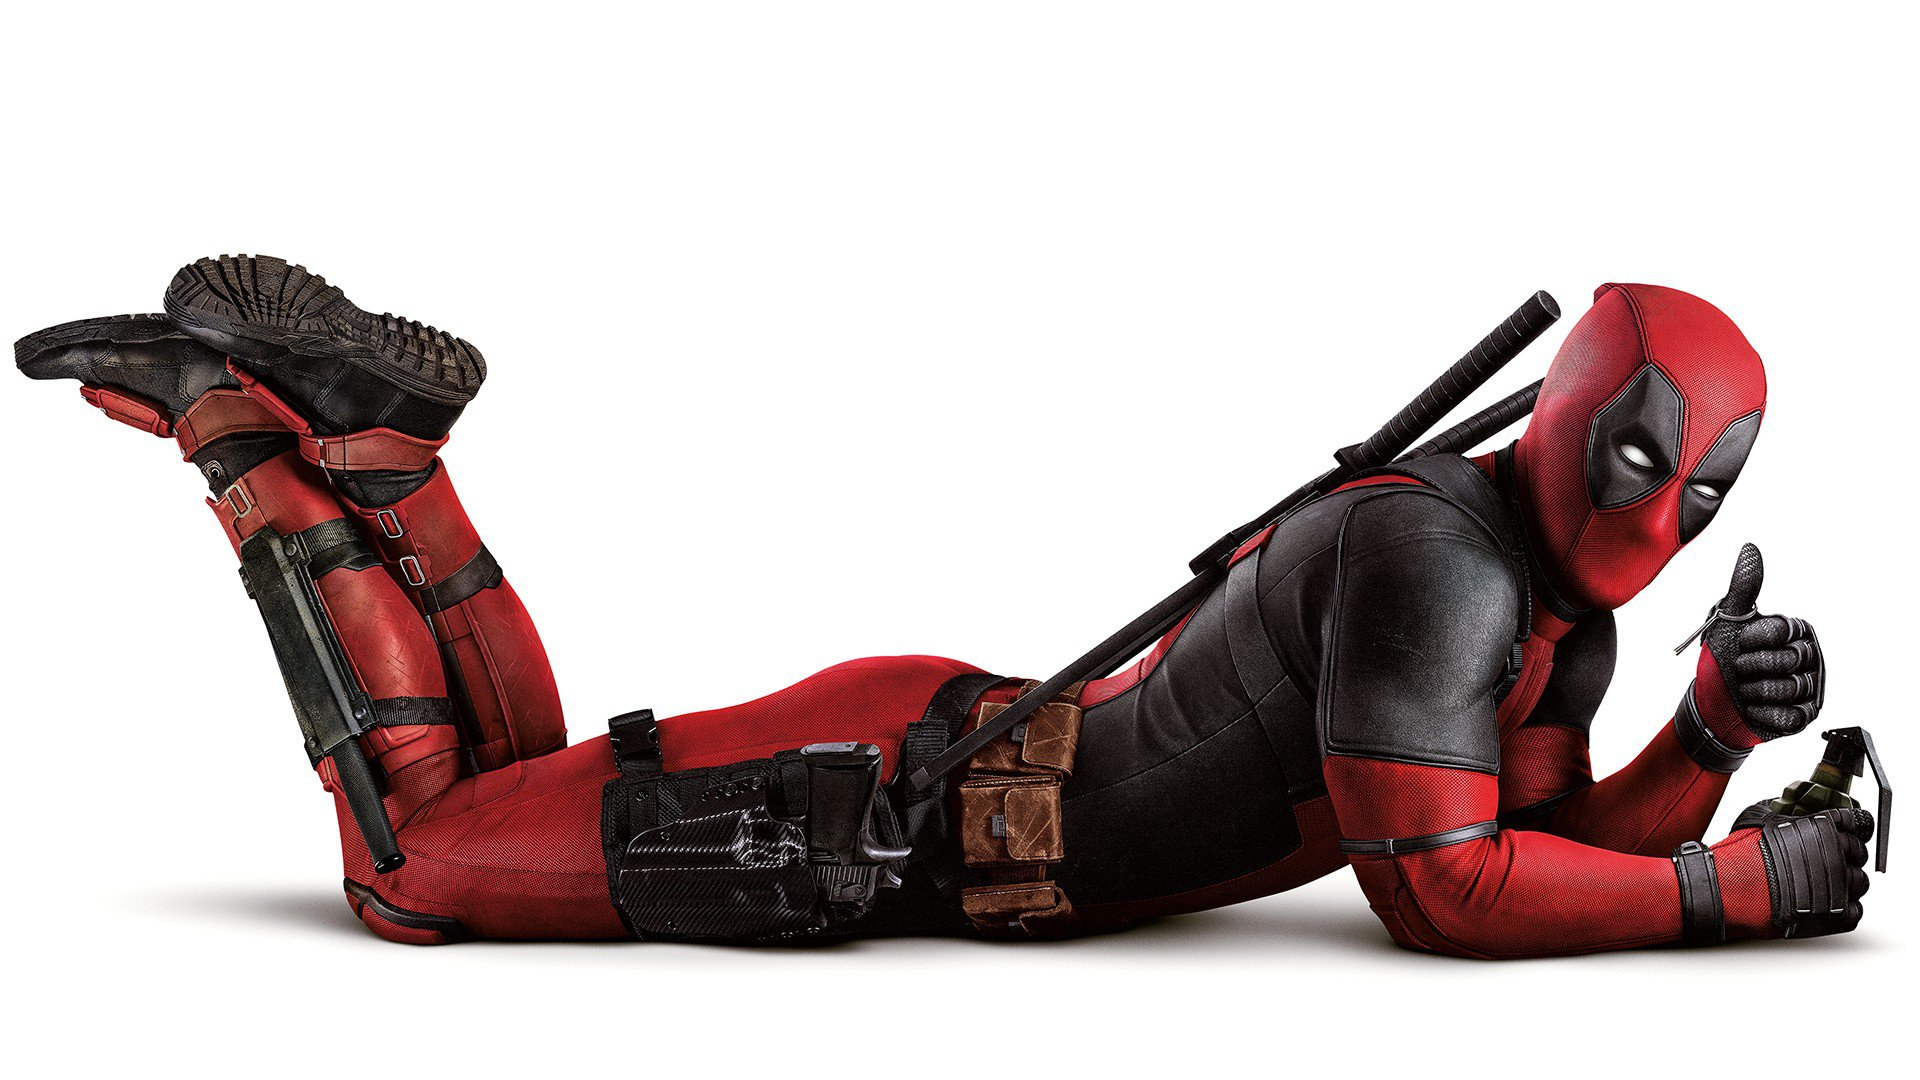 Deadpool Desktop HD Movies 4k Wallpapers Images Backgrounds